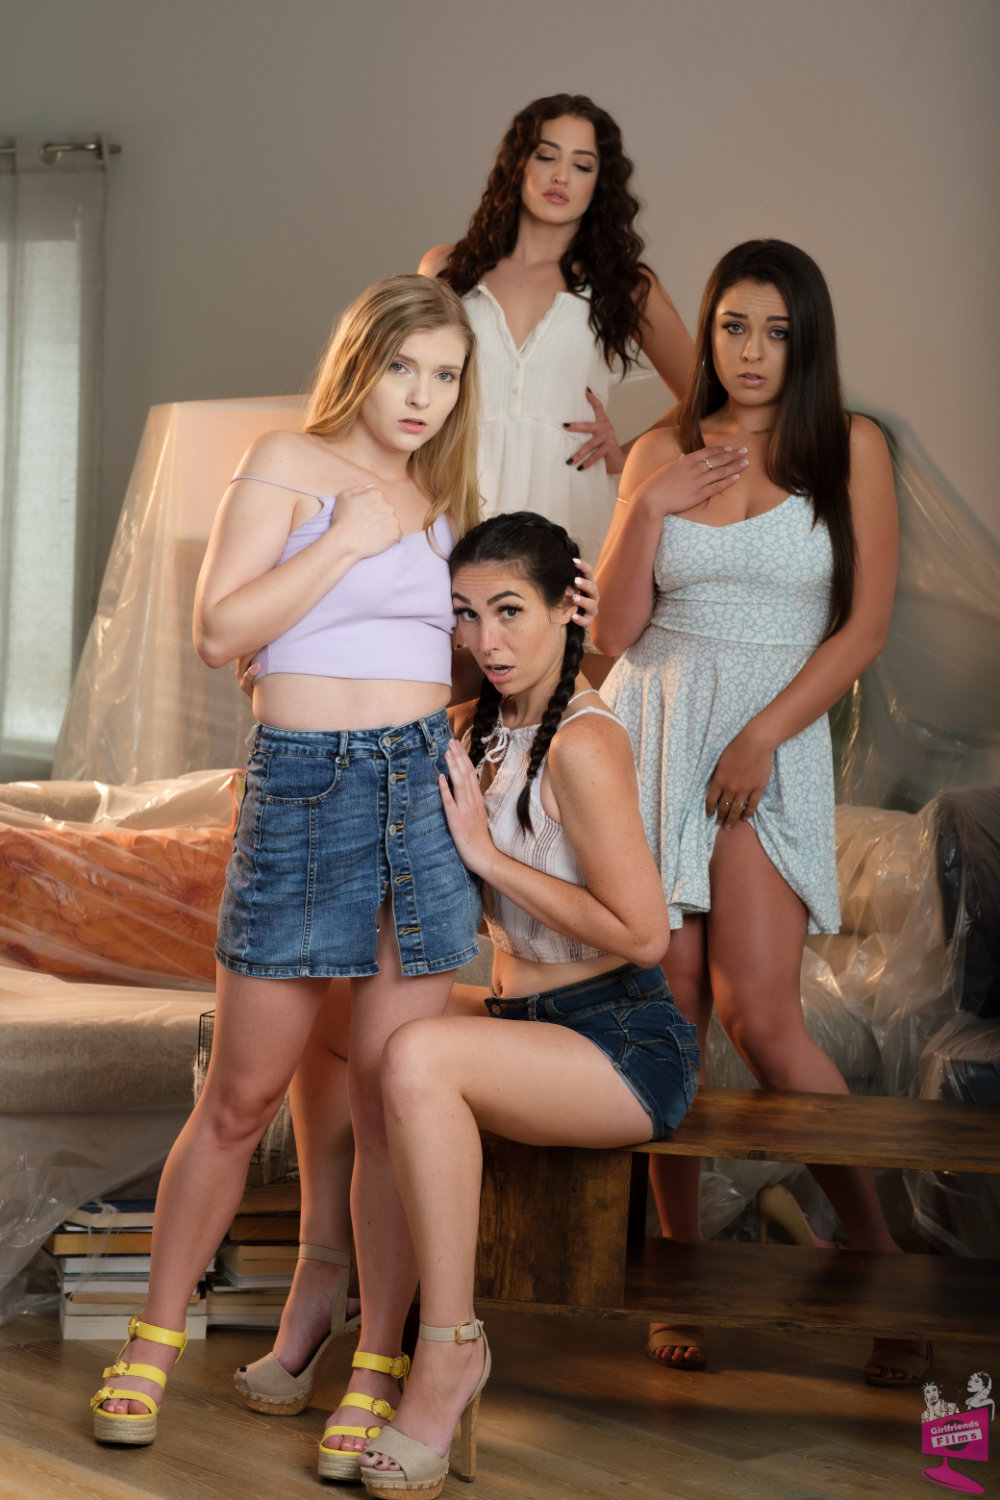 Cast of Lesbian Ghost Stories 5